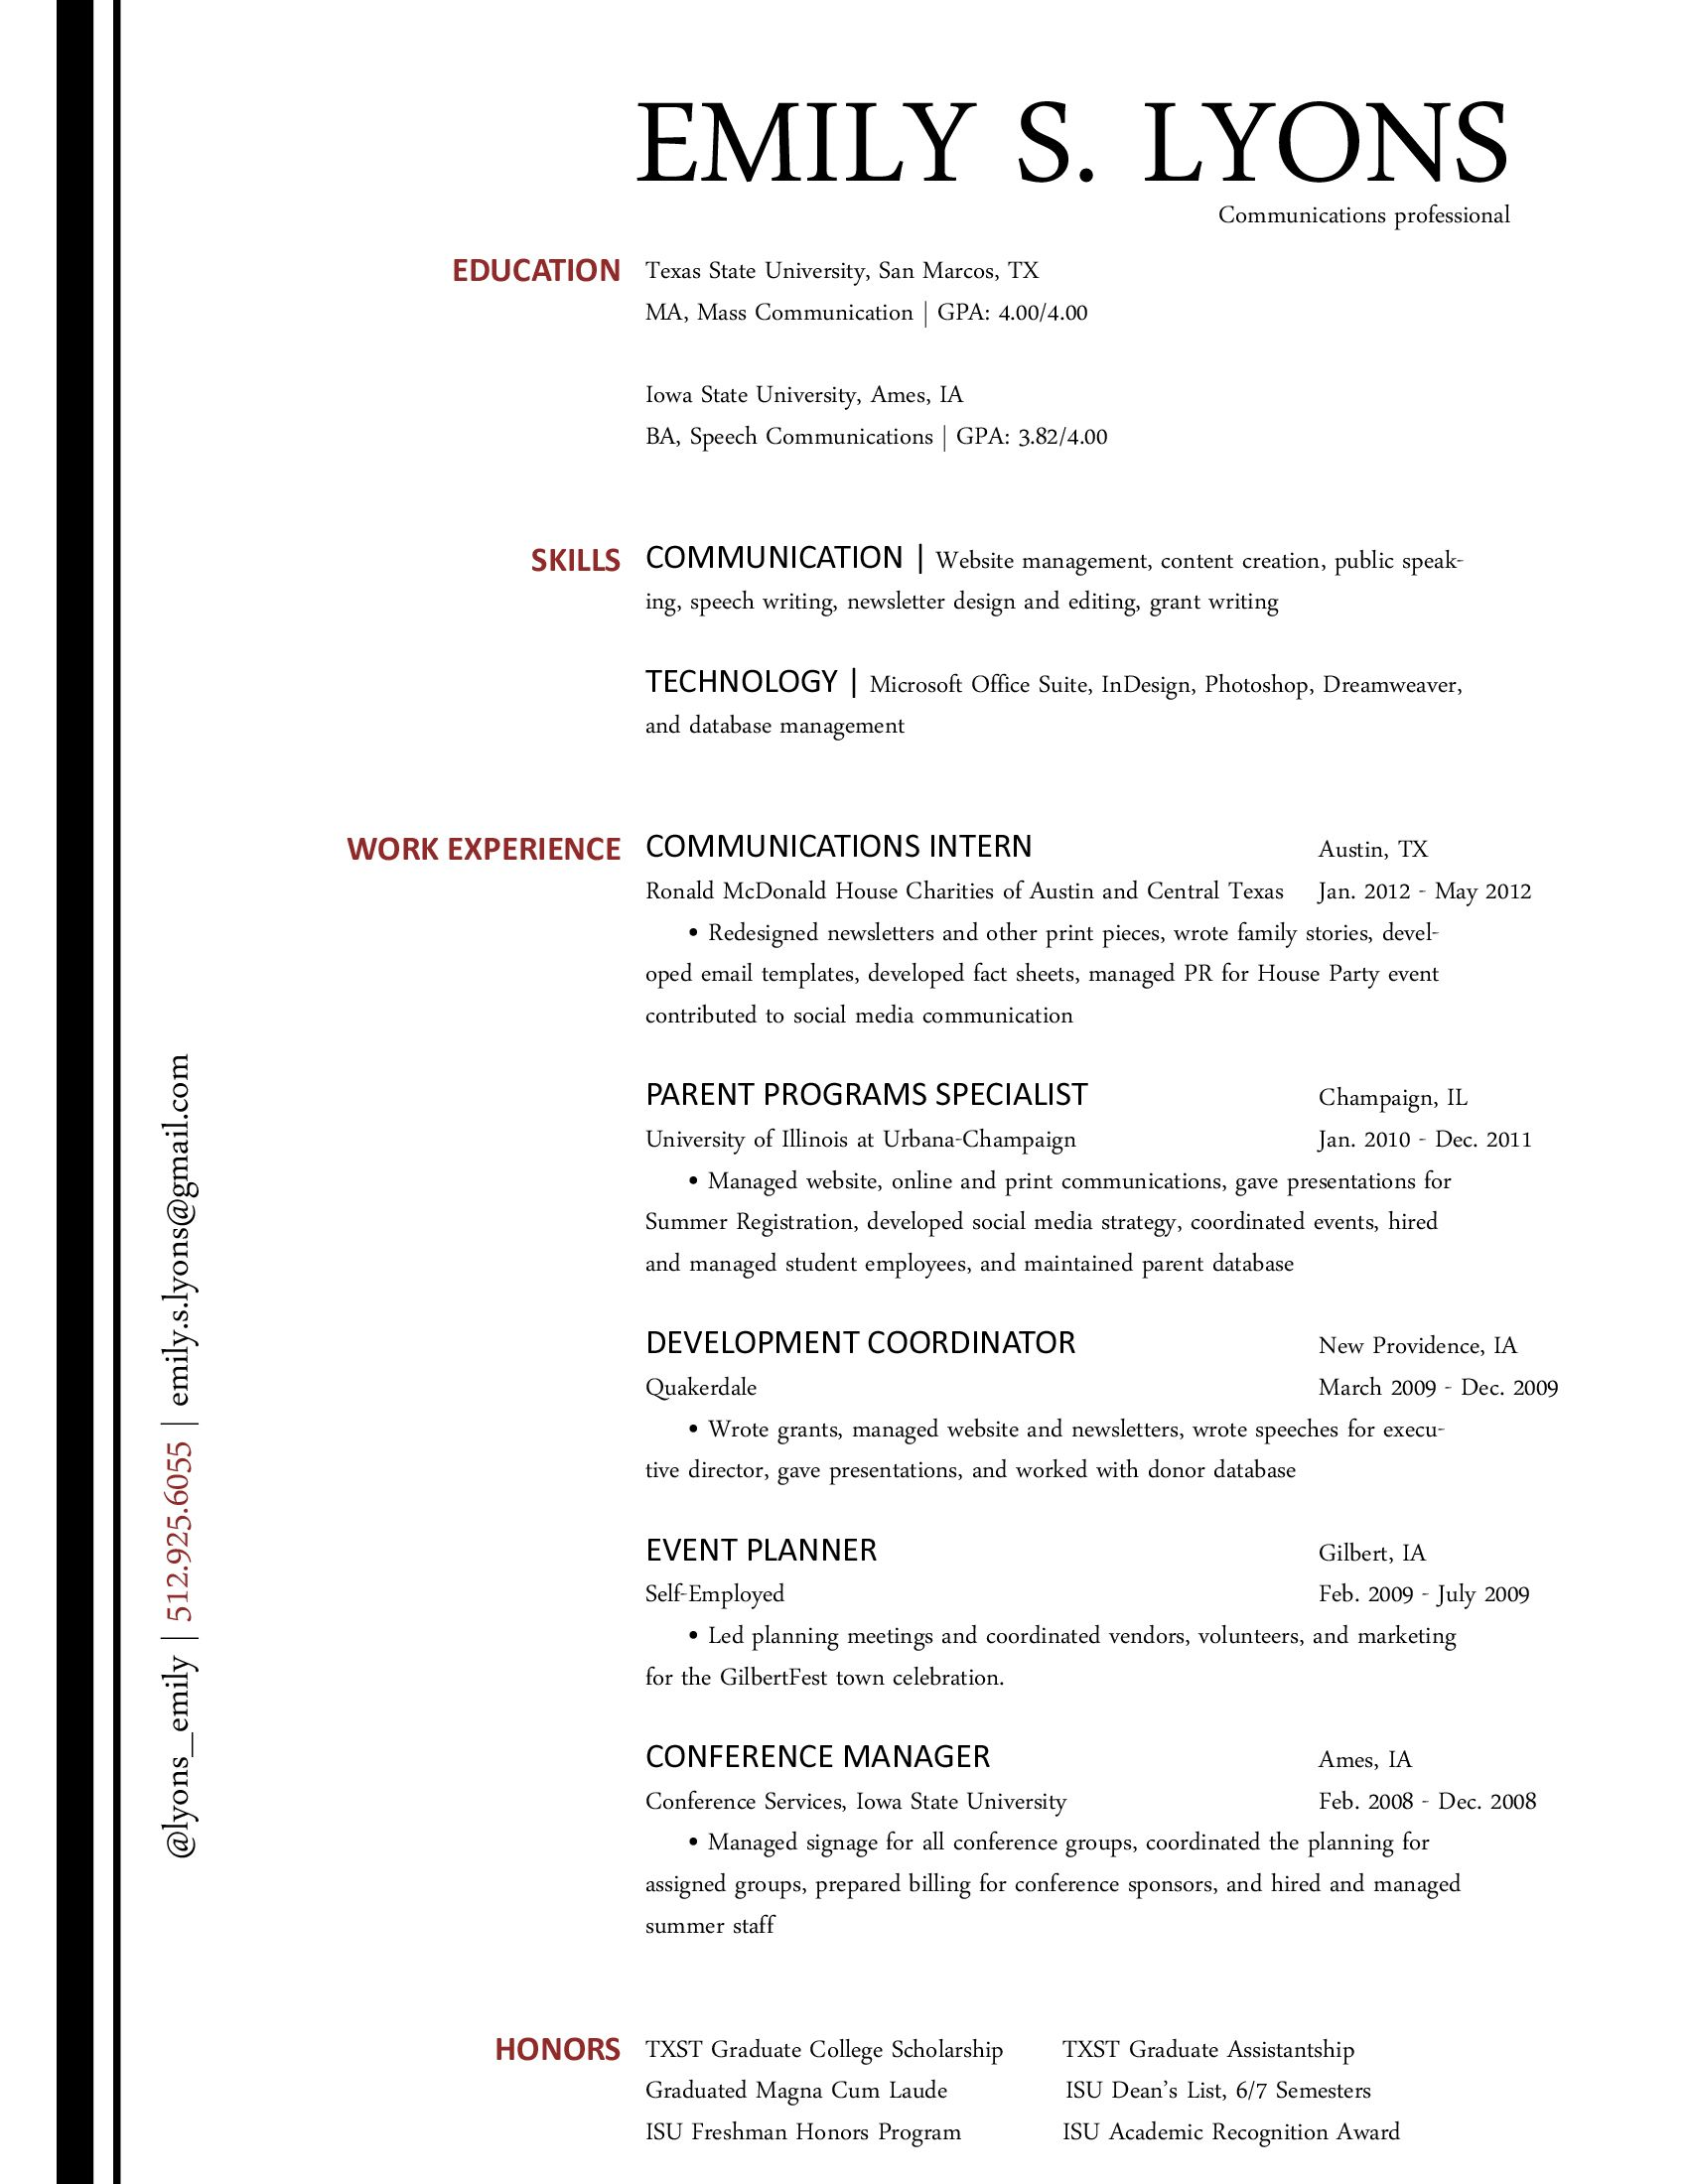 example corporate communications resume  free sample  i need a  also example corporate communications resume  free sample  i need a job pinterest  resume communication and examples